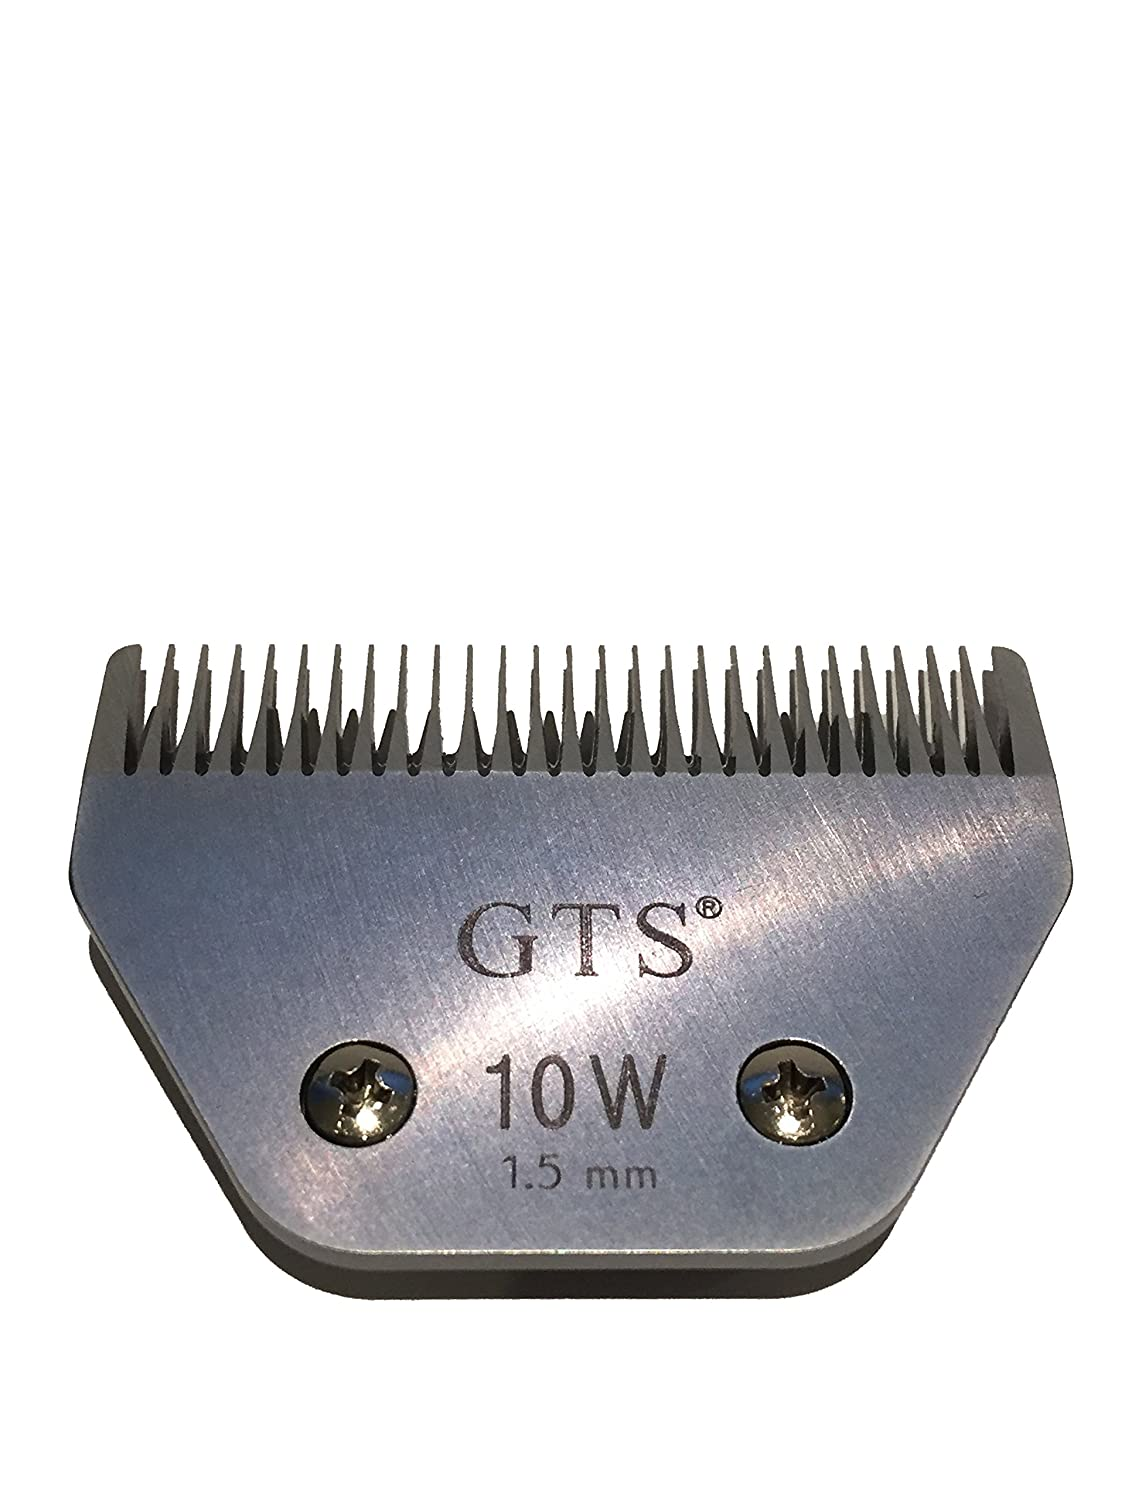 10W tondeuse à cheval Lames 1,5mm 10W Wahl, Andis, Aesculap, Moser, Oster, Liveryman GTS